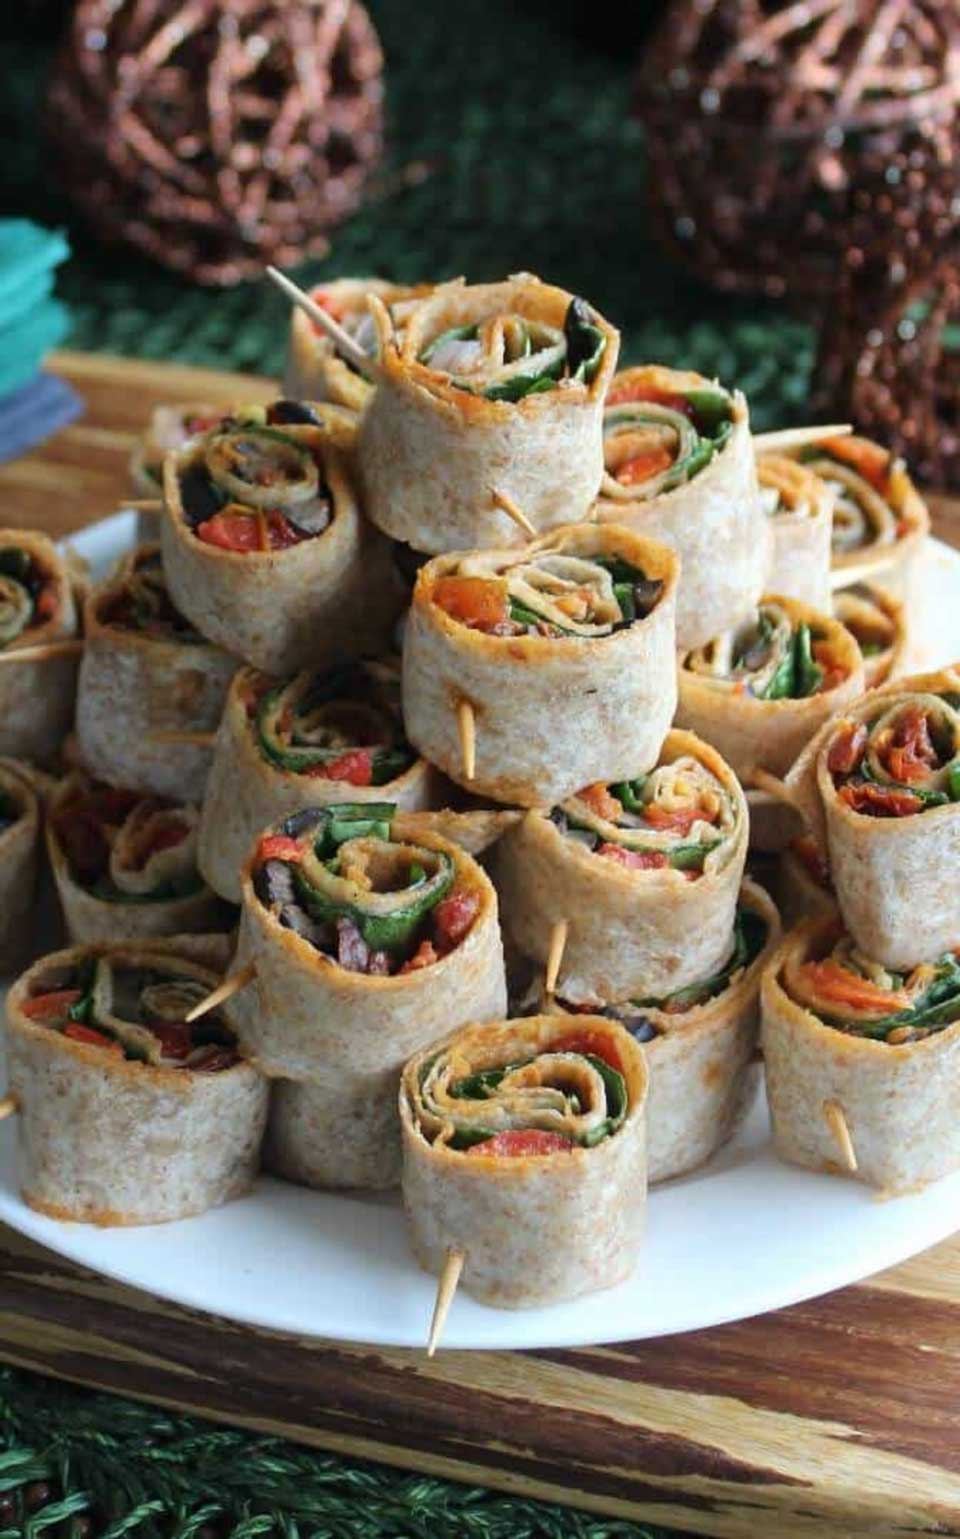 A big stack of Spicy Tortilla Roll Ups on a white plate with party decorations in the background.